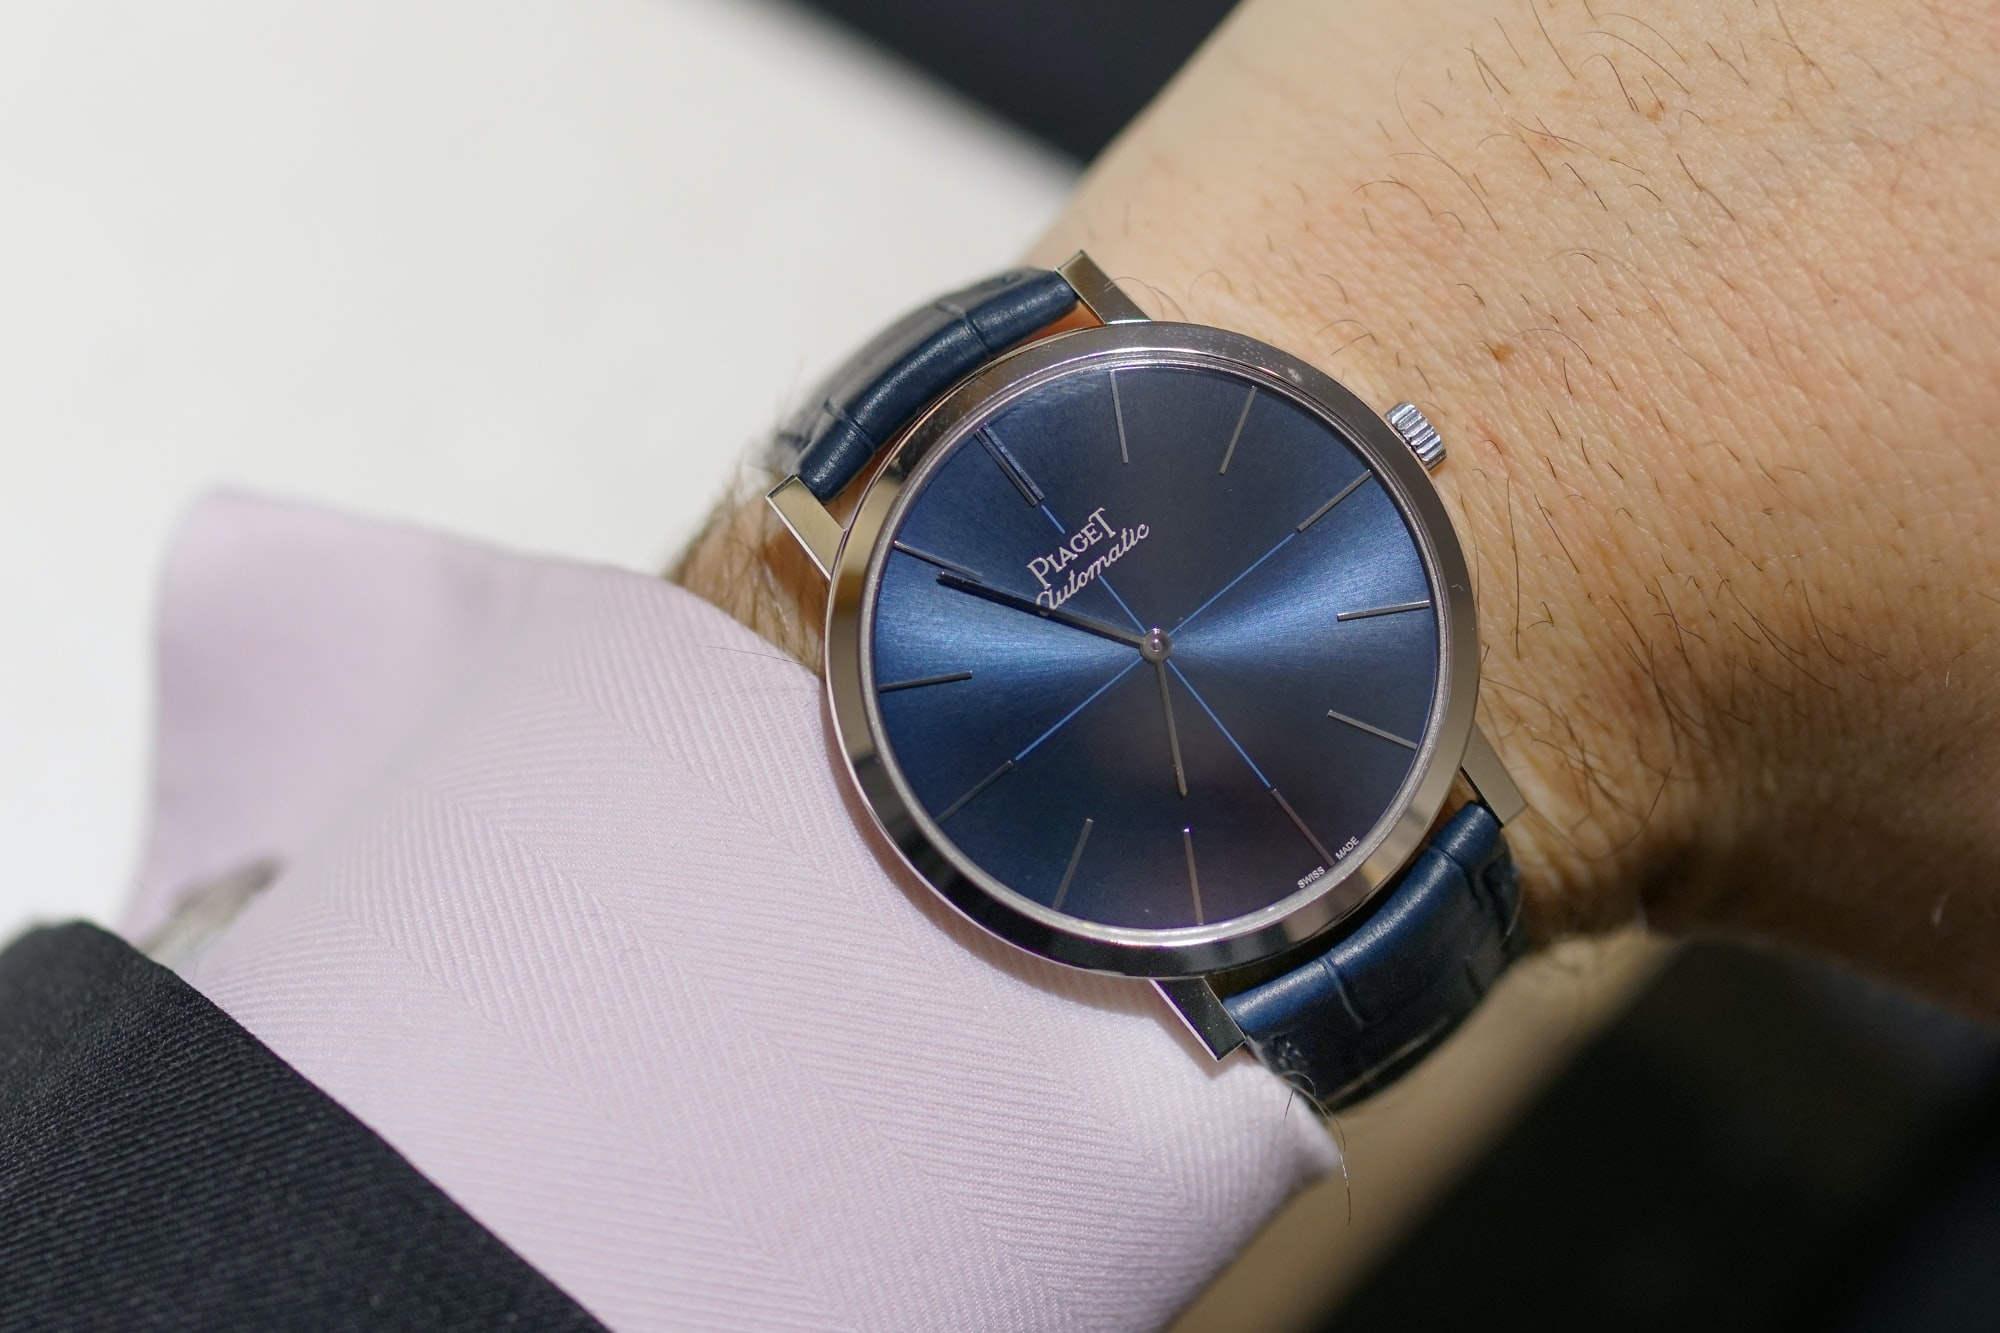 Piaget Altiplano Automatic 60th anniversary Introducing: The Piaget Altiplano Automatic With Date, Going Back To The Roots Of Piaget (Live Pics + Pricing) Introducing: The Piaget Altiplano Automatic With Date, Going Back To The Roots Of Piaget (Live Pics + Pricing) piaget wrist